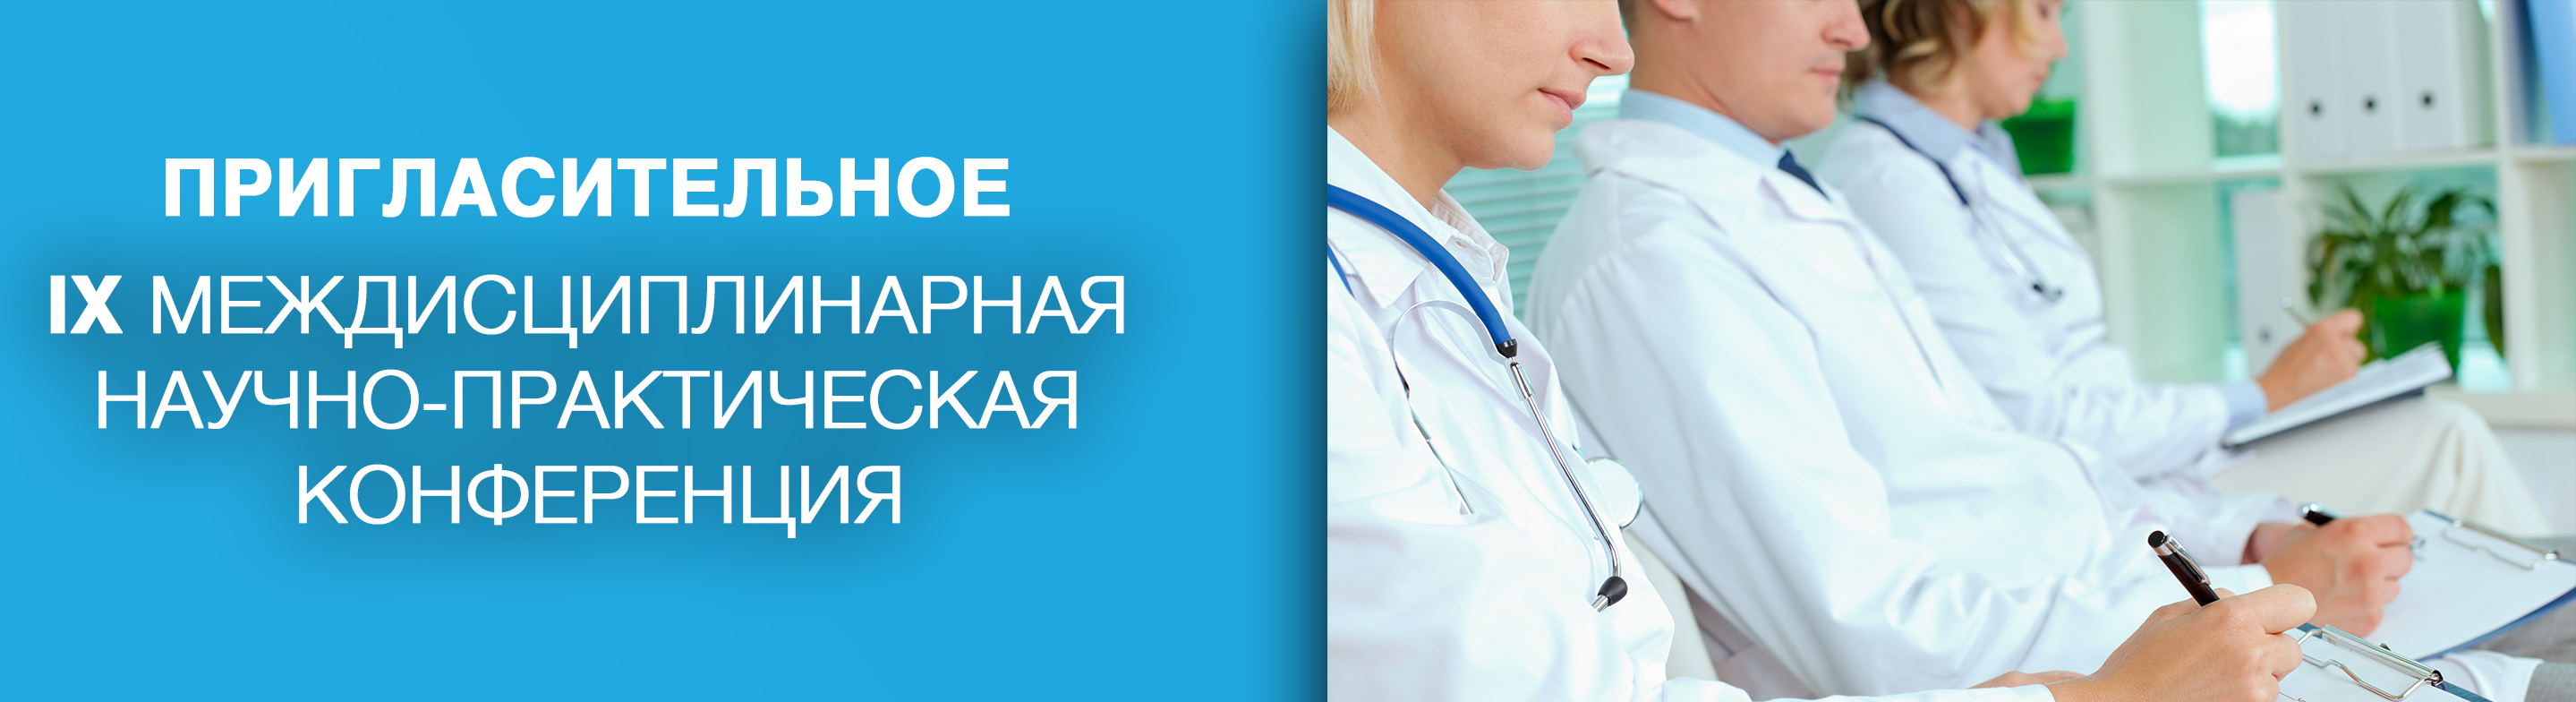 //nb-clinic.ru/wp-content/uploads/2018/01/IX-1.jpg